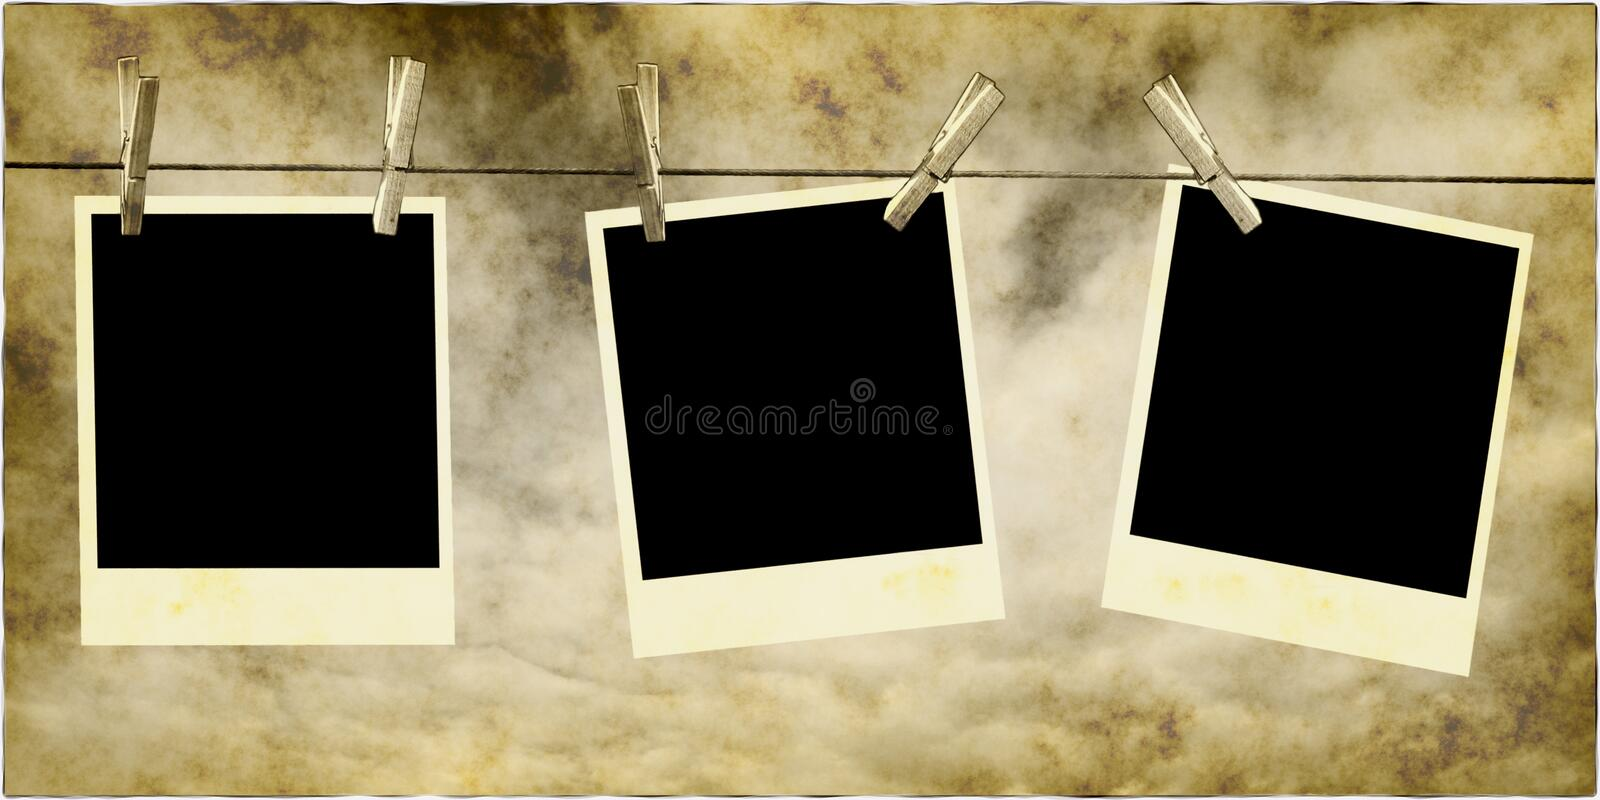 Photos Hanging On Rope royalty free illustration